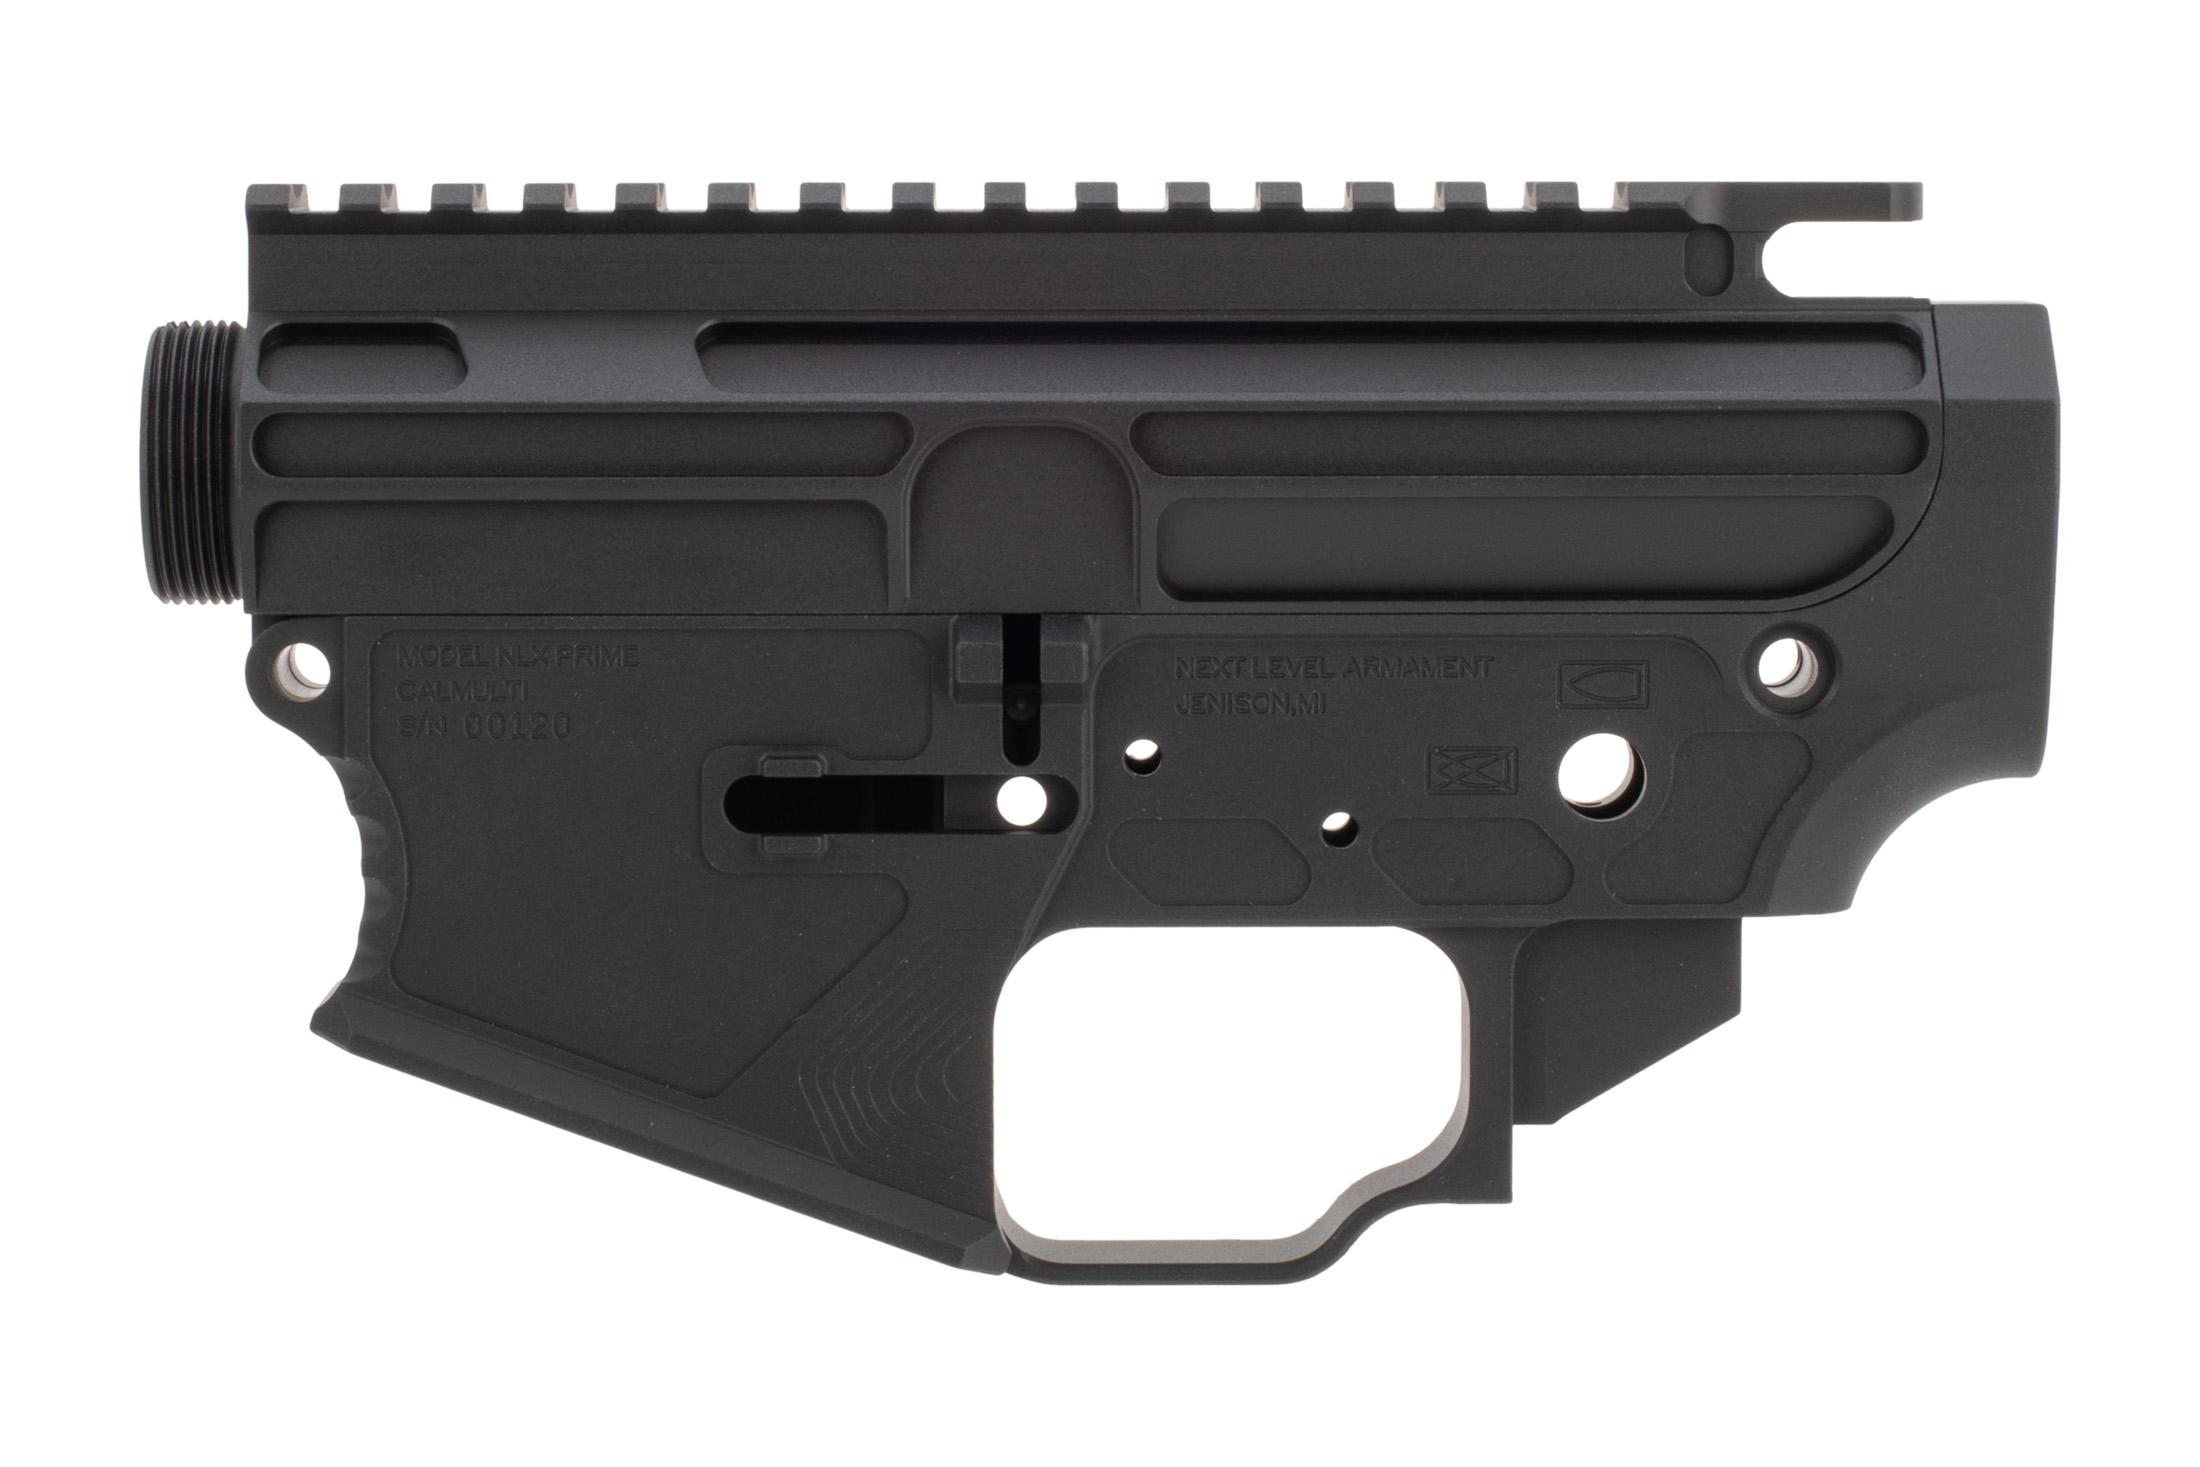 The Next Level Armament NLX15 Billet AR15 stripped receiver set features an enlarged integral trigger guard